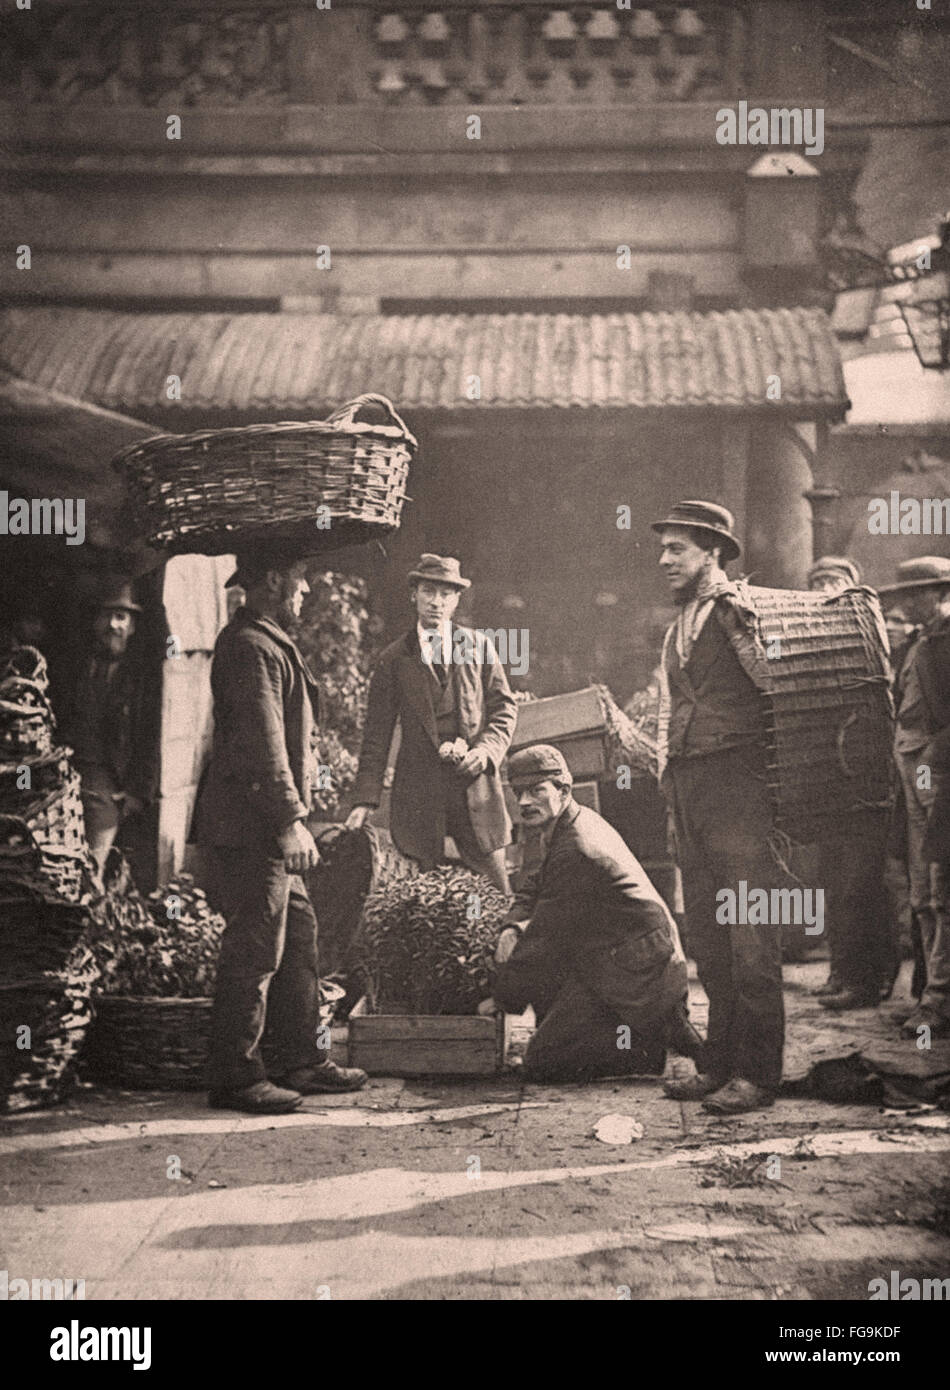 Street Life in London from the Victorian Era - Stock Image